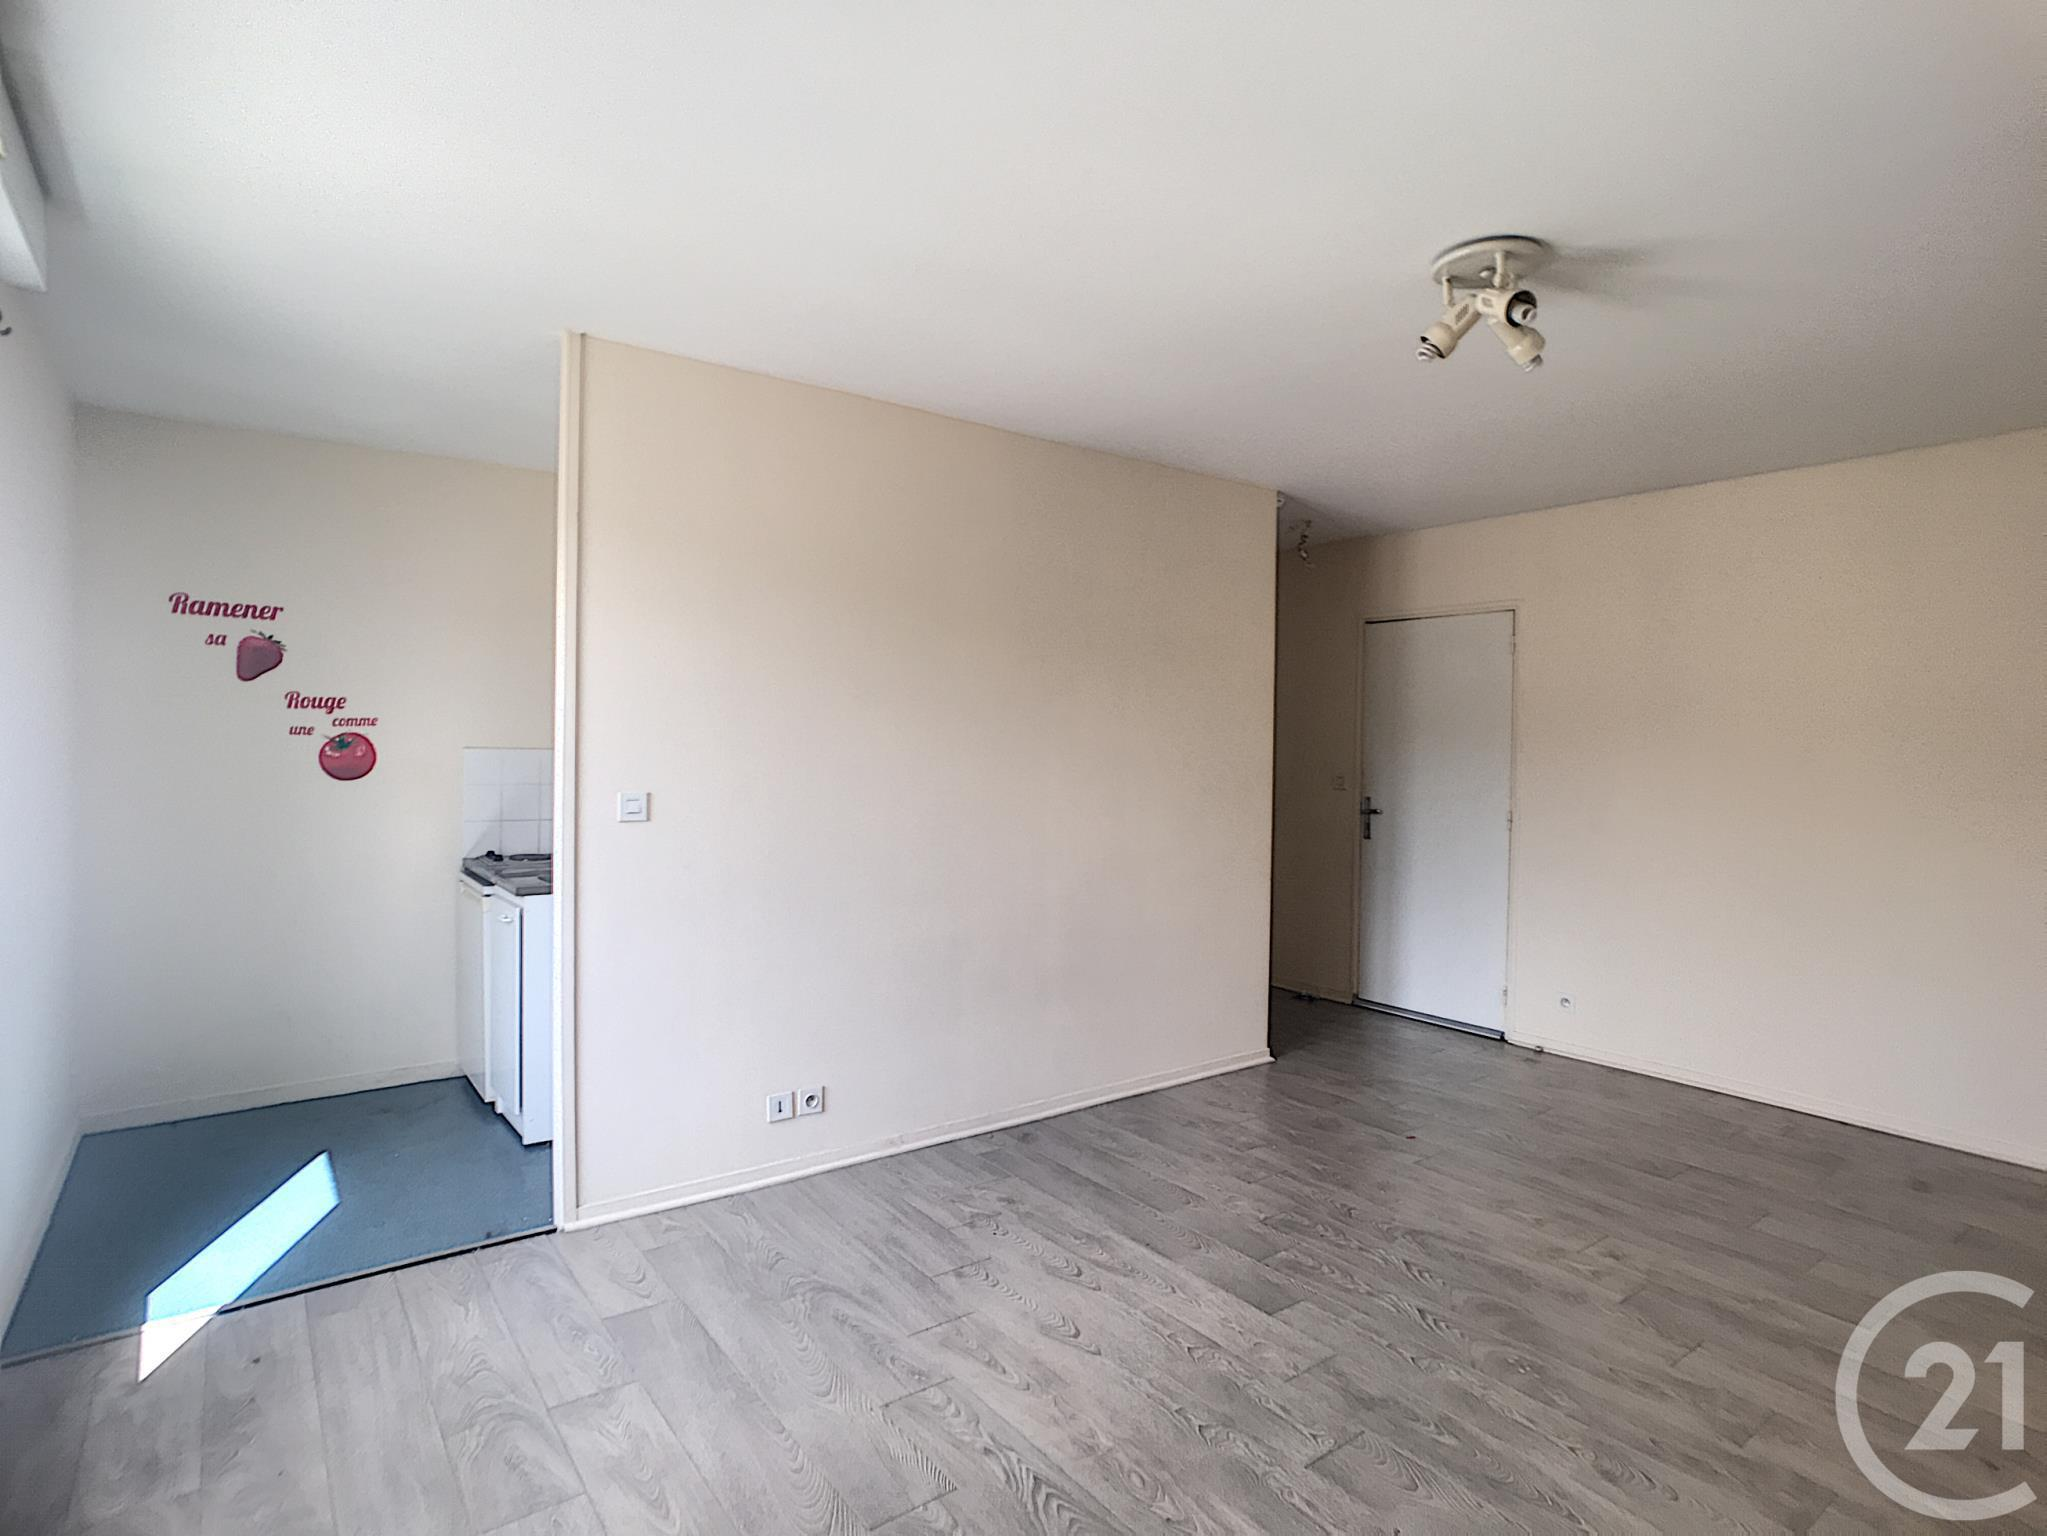 Appartement f1 à vendre - 1 pièce - 27 m2 - TROYES - 10 - CHAMPAGNE-ARDENNE